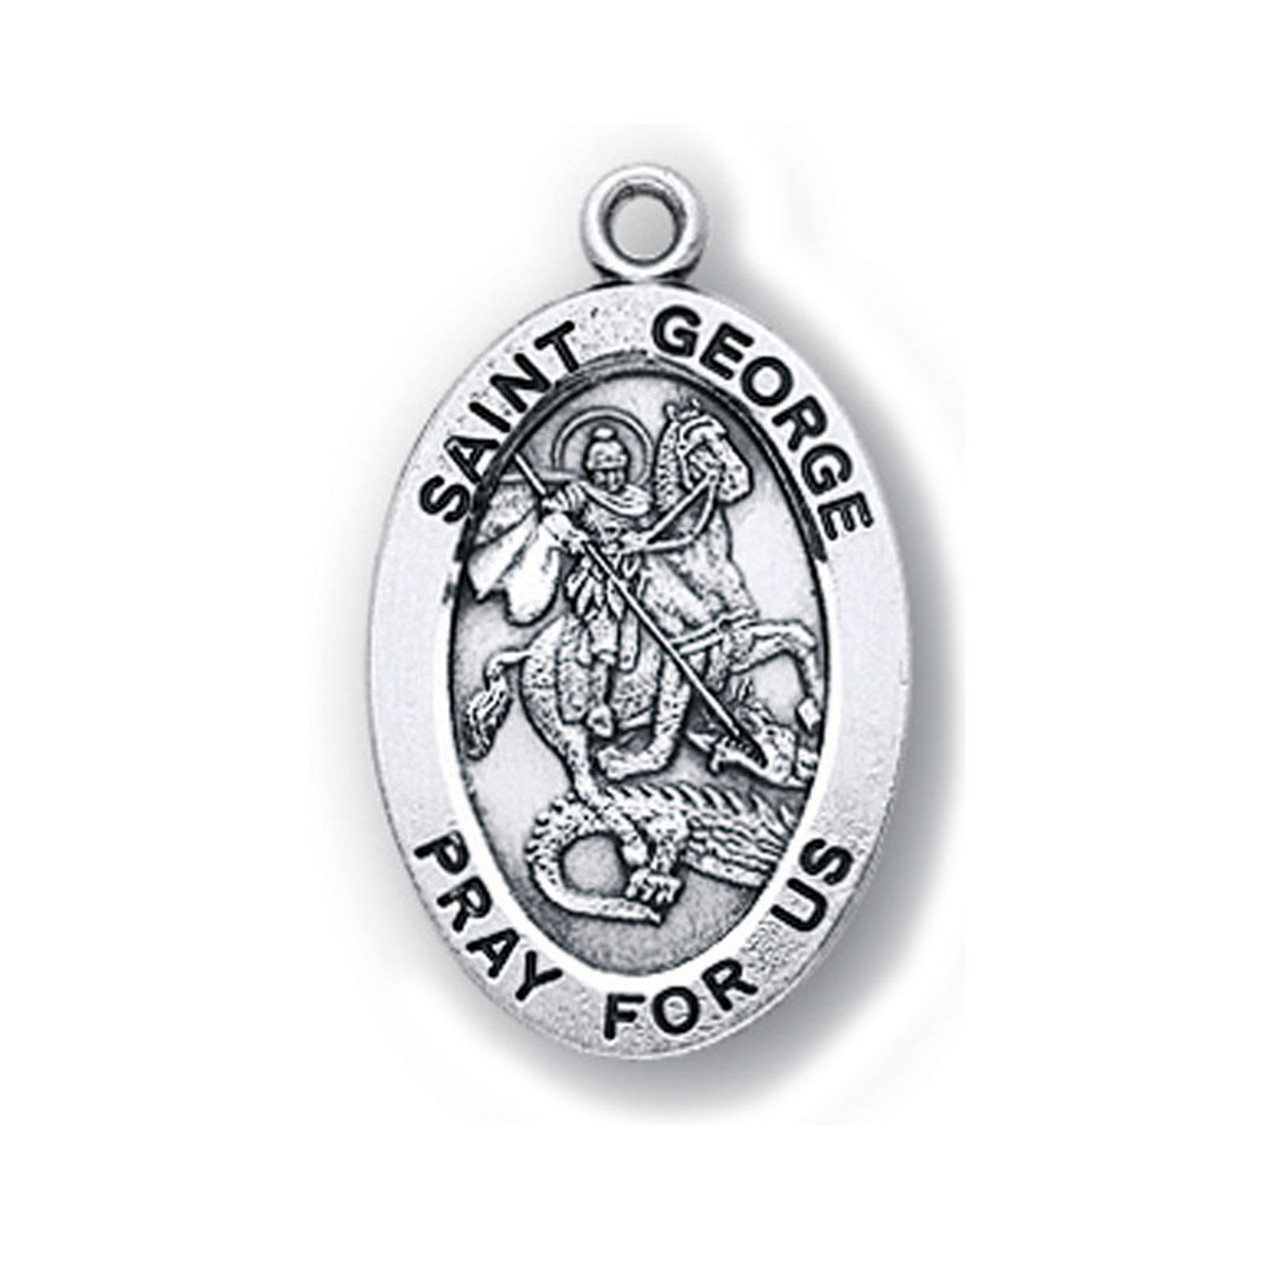 Small St. George Medal Necklace